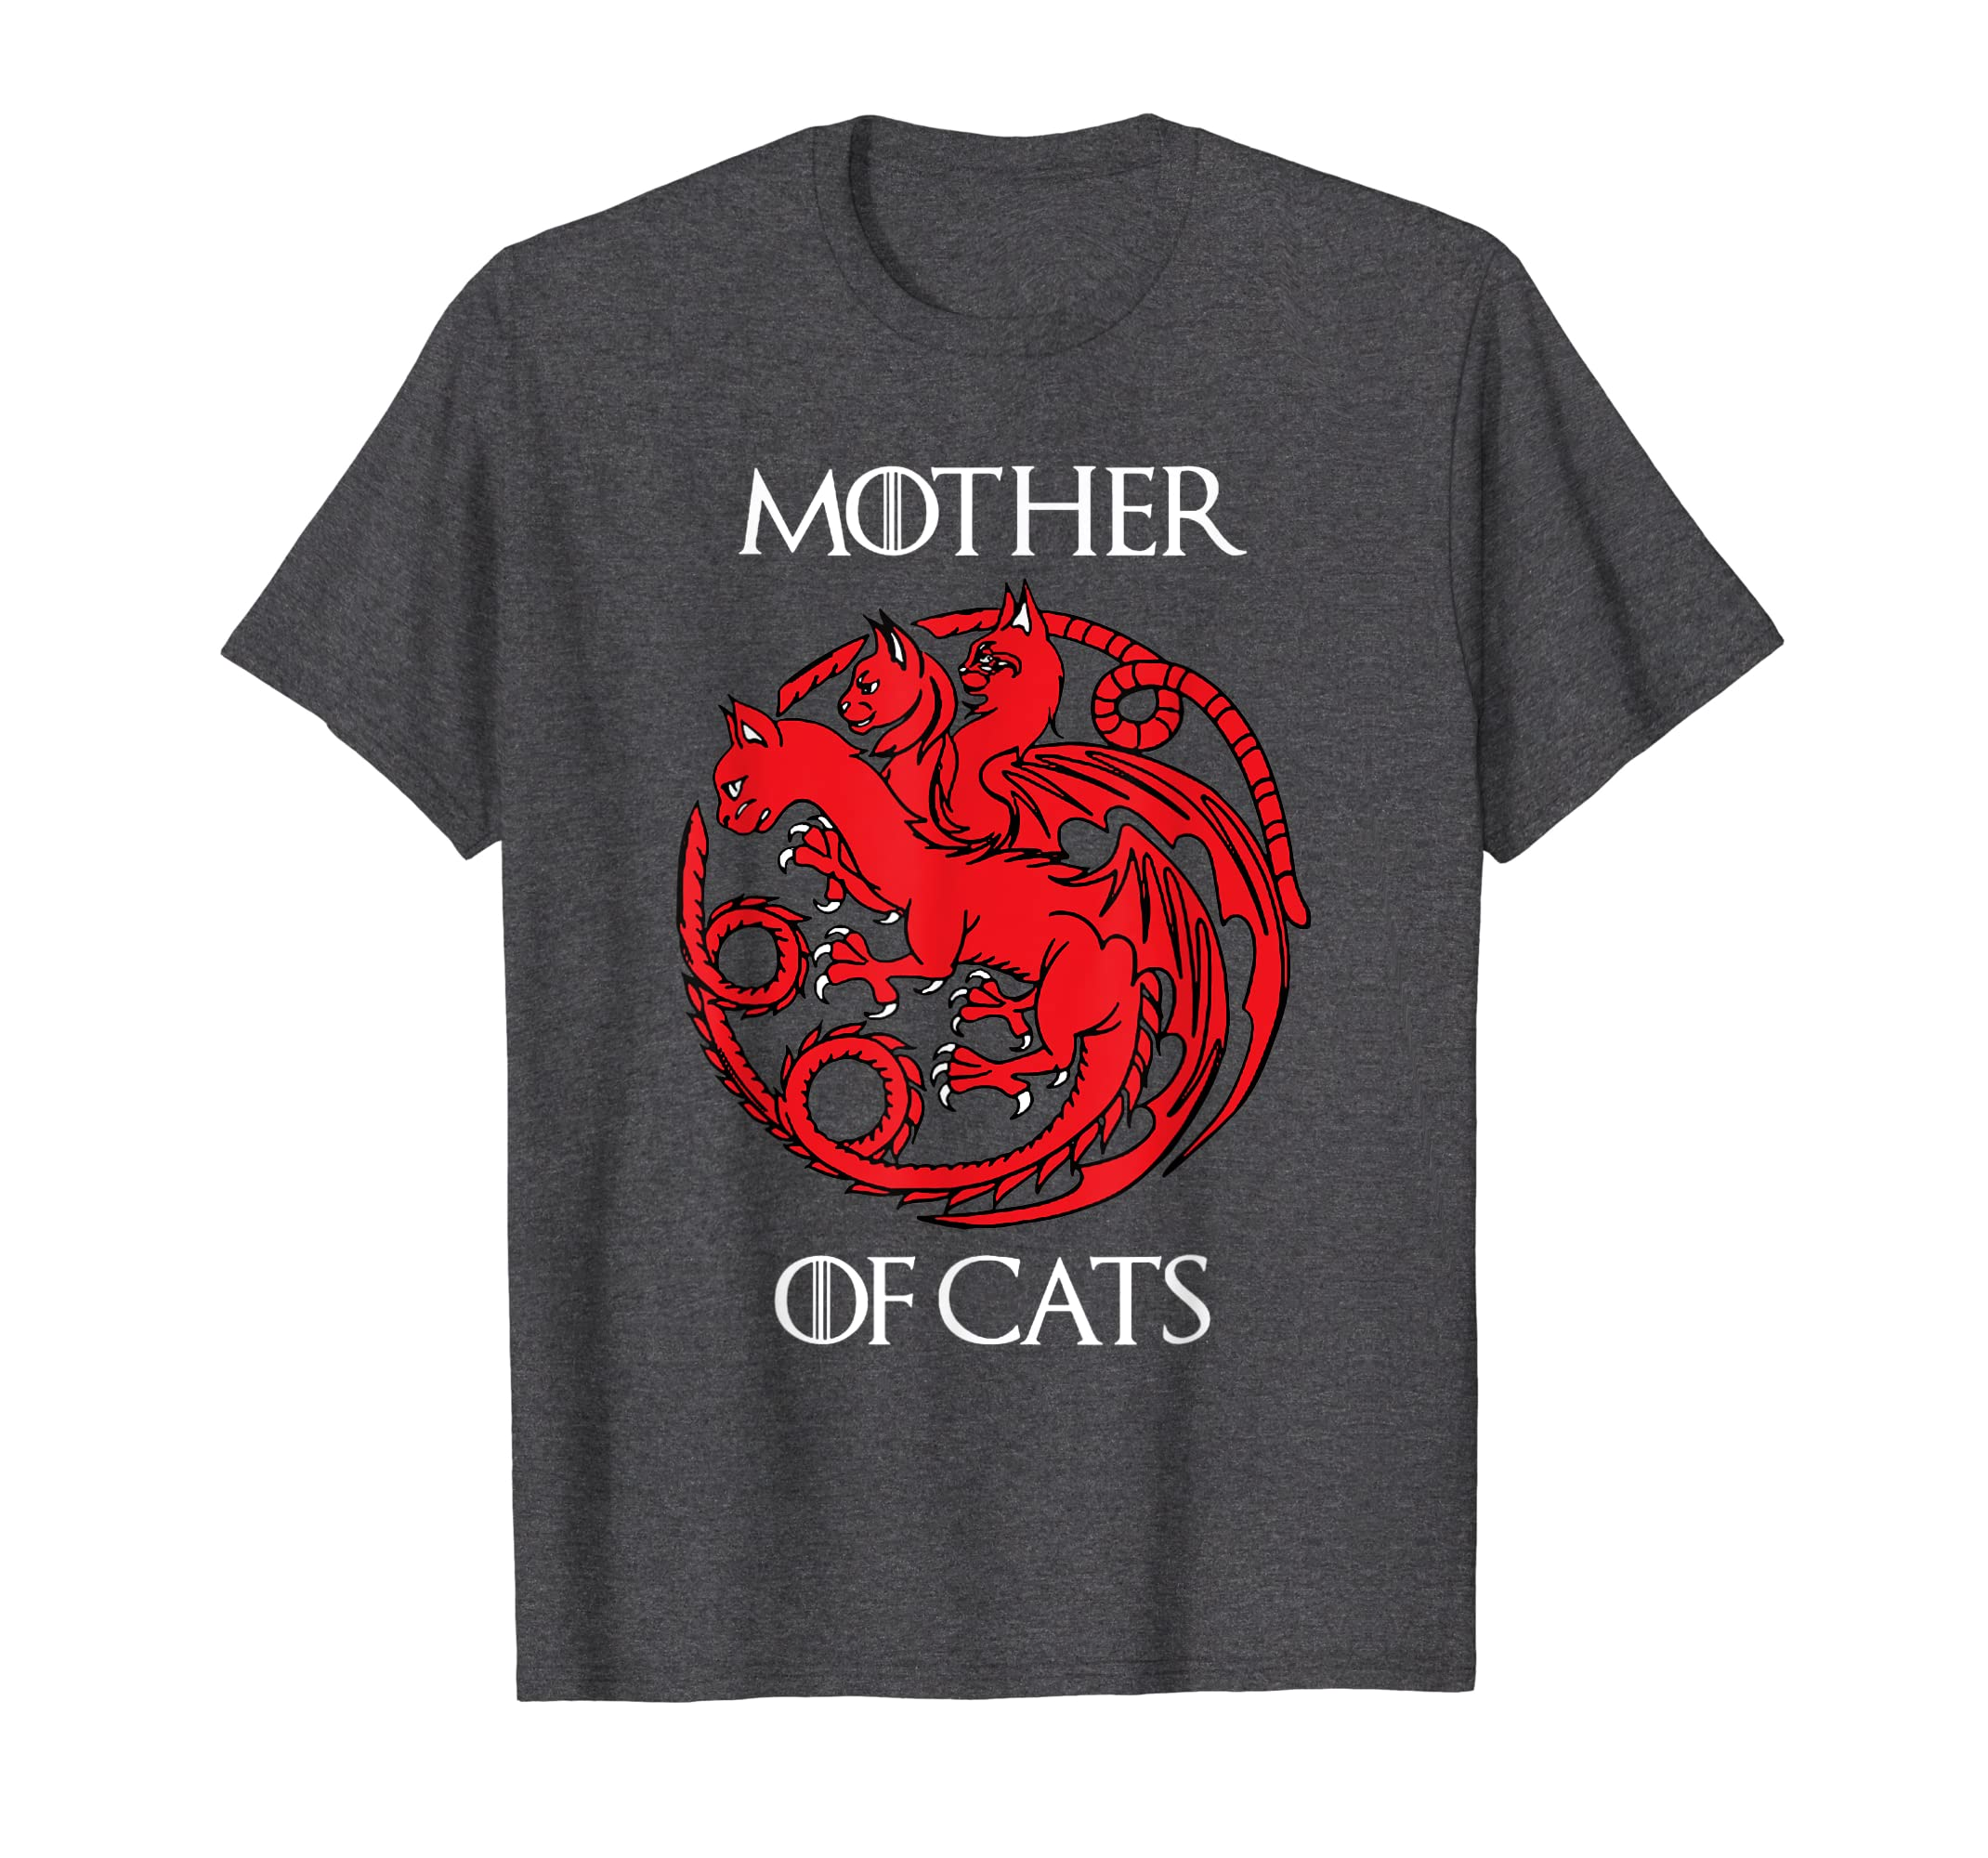 538562420 Amazon.com: Cat Lovers Shirt - Mother of Cats Hot 2019 T-Shirt: Clothing